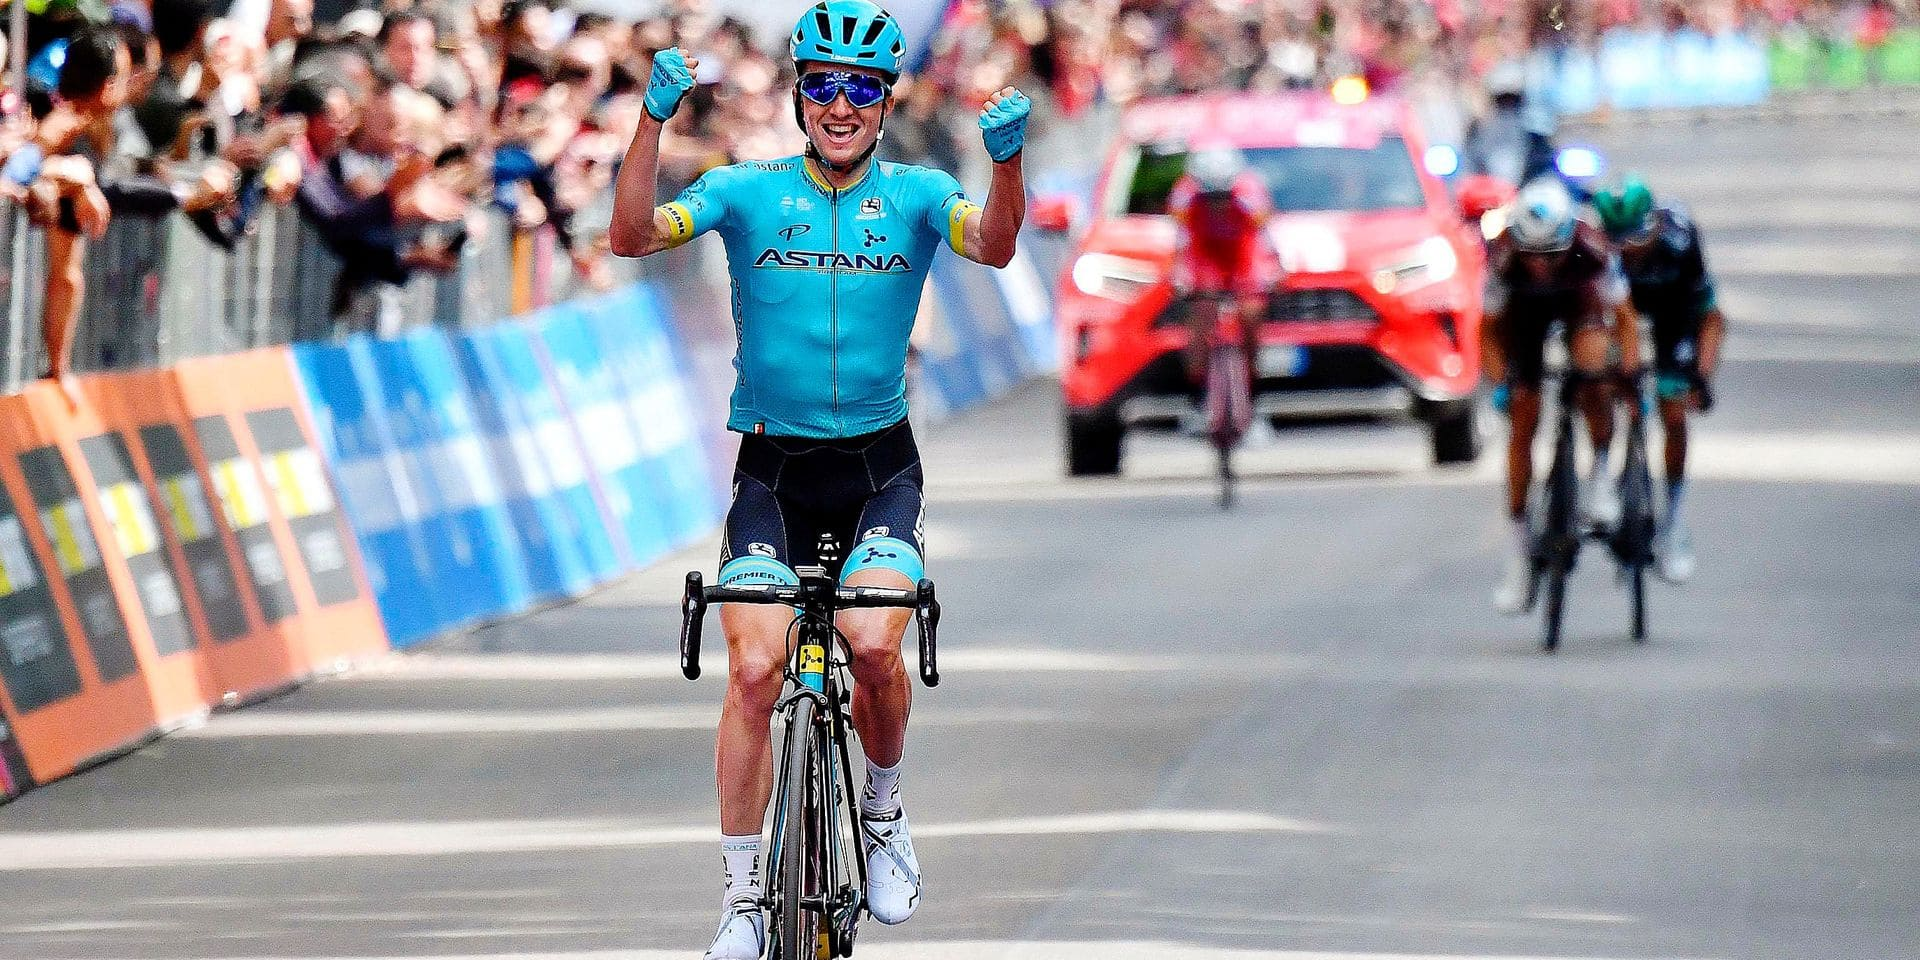 Giro: Bilbao poursuit la moisson d'Astana